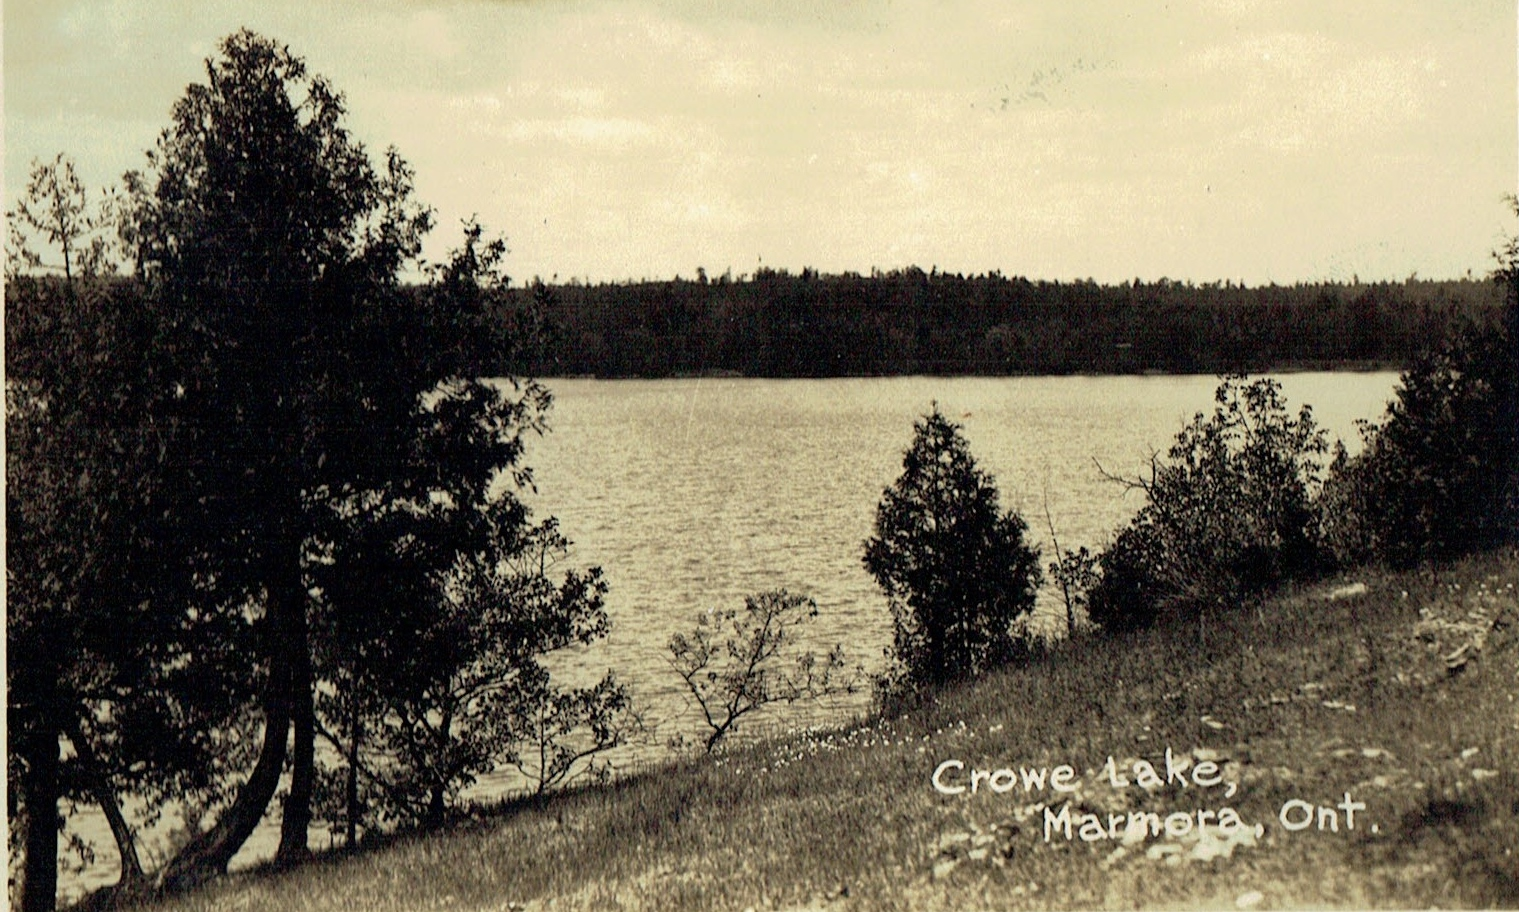 Marble point post card.jpg